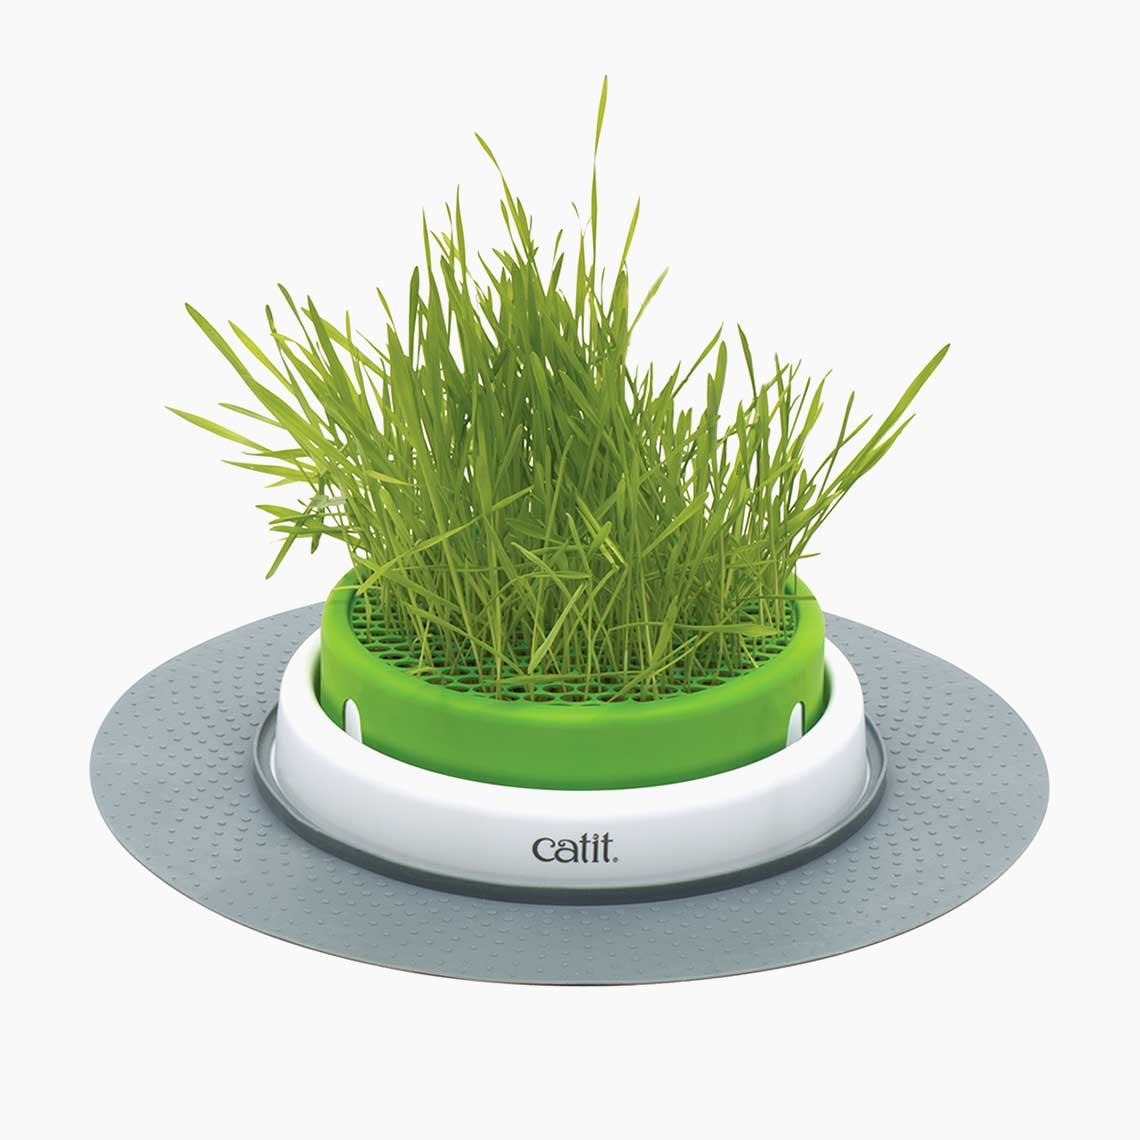 Catit Senses 2.0 Grass Planter Cat Toy Image